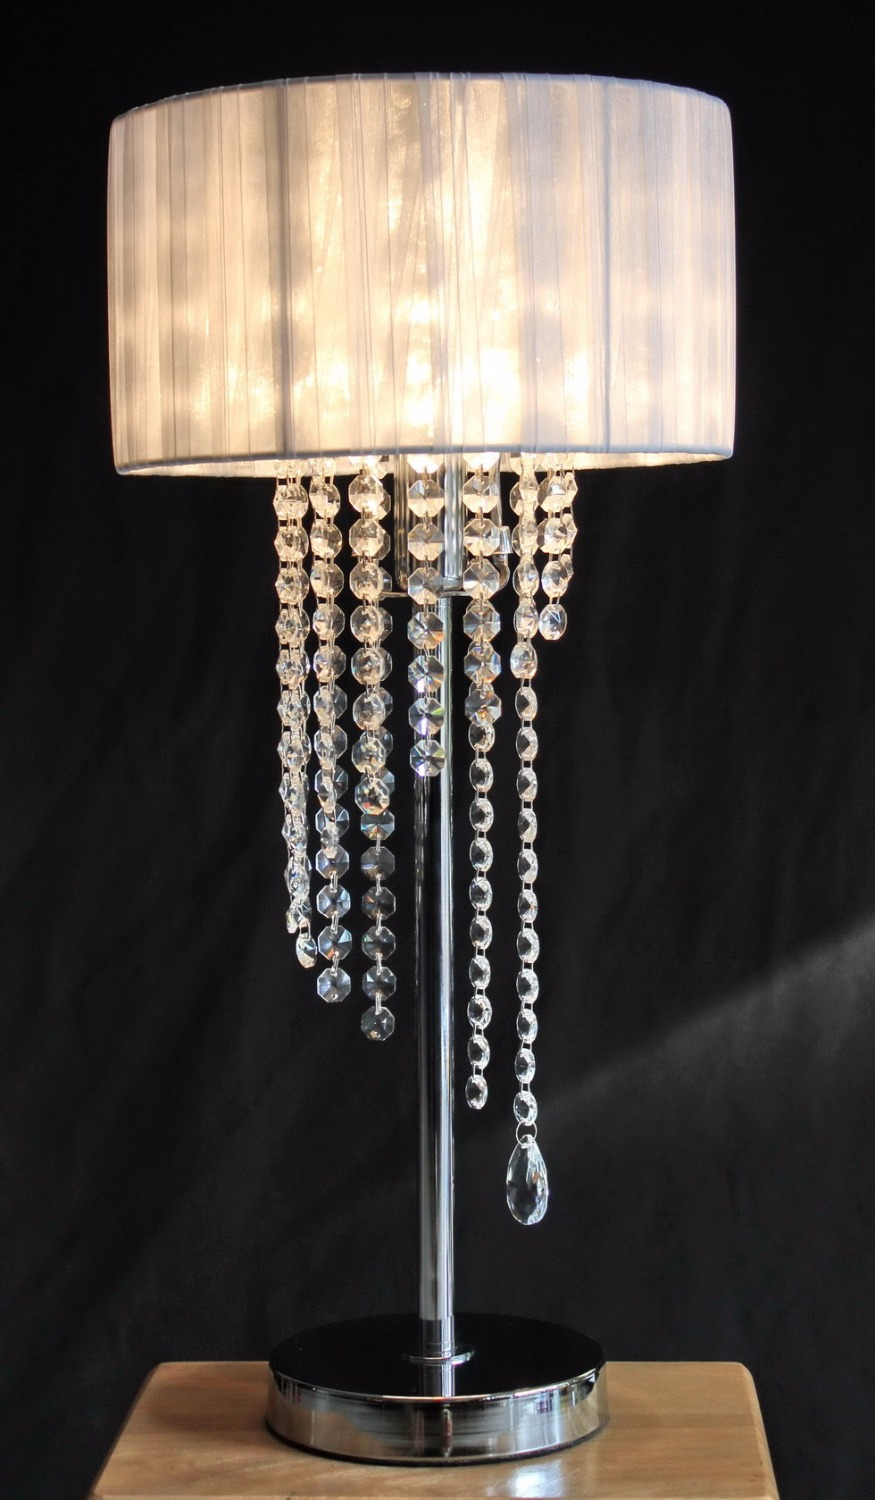 Table Lights Bedside Lamp Crystal Lamps The Bedroom Light Fixtures Glass Led Wedding Room Decoration Home home decoration decoration the lighthouse tea table the teapoy decorative frame the florist